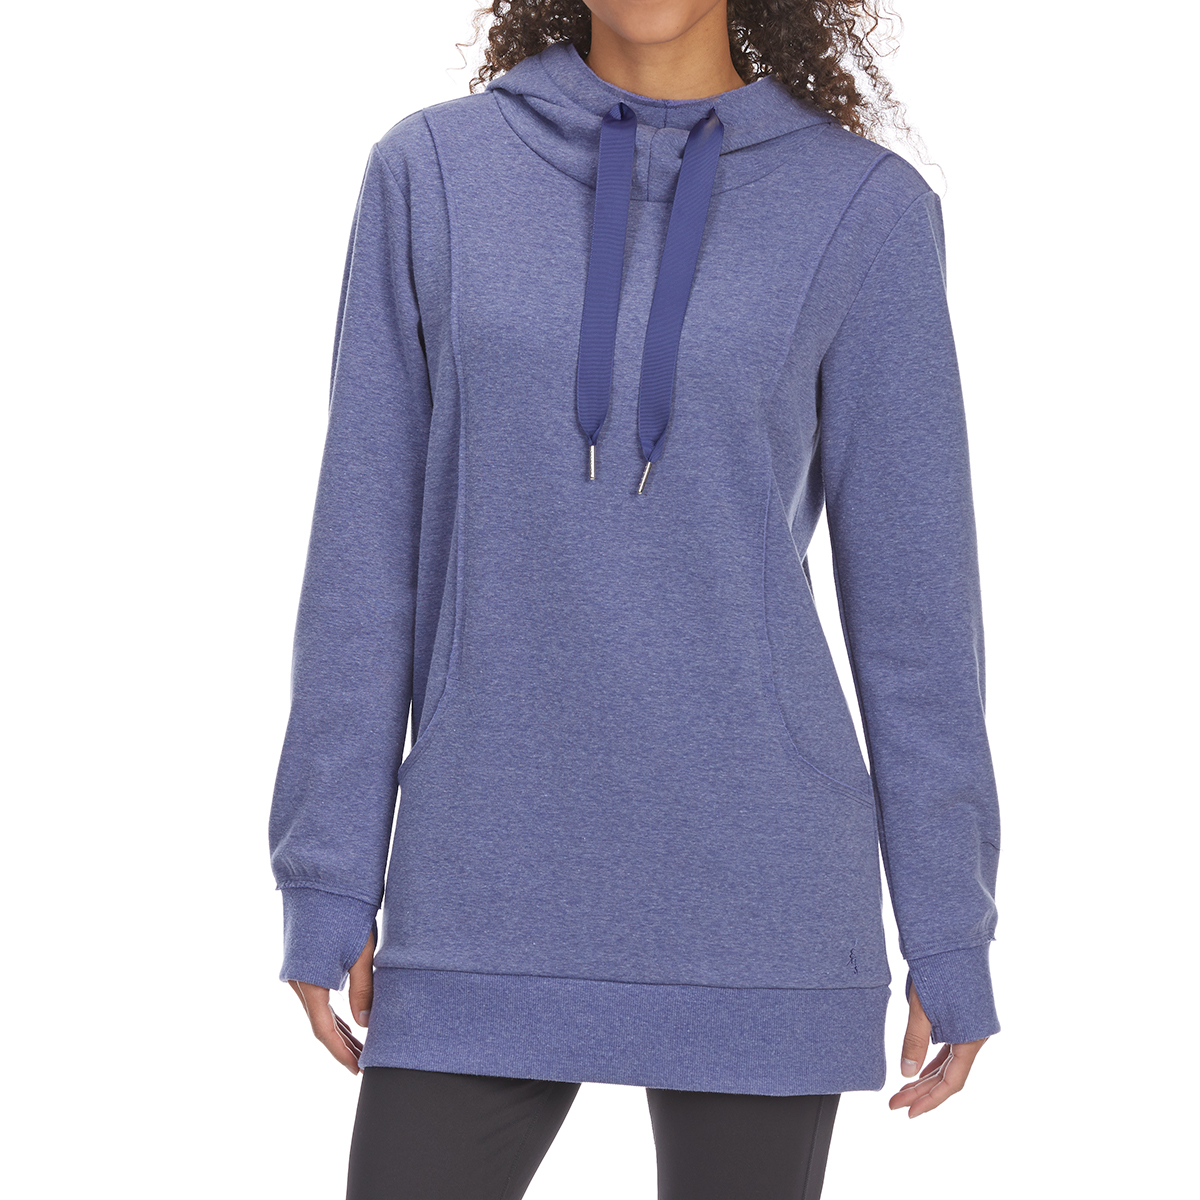 Ems Women's Canyon Pullover Hoodie - Blue, M